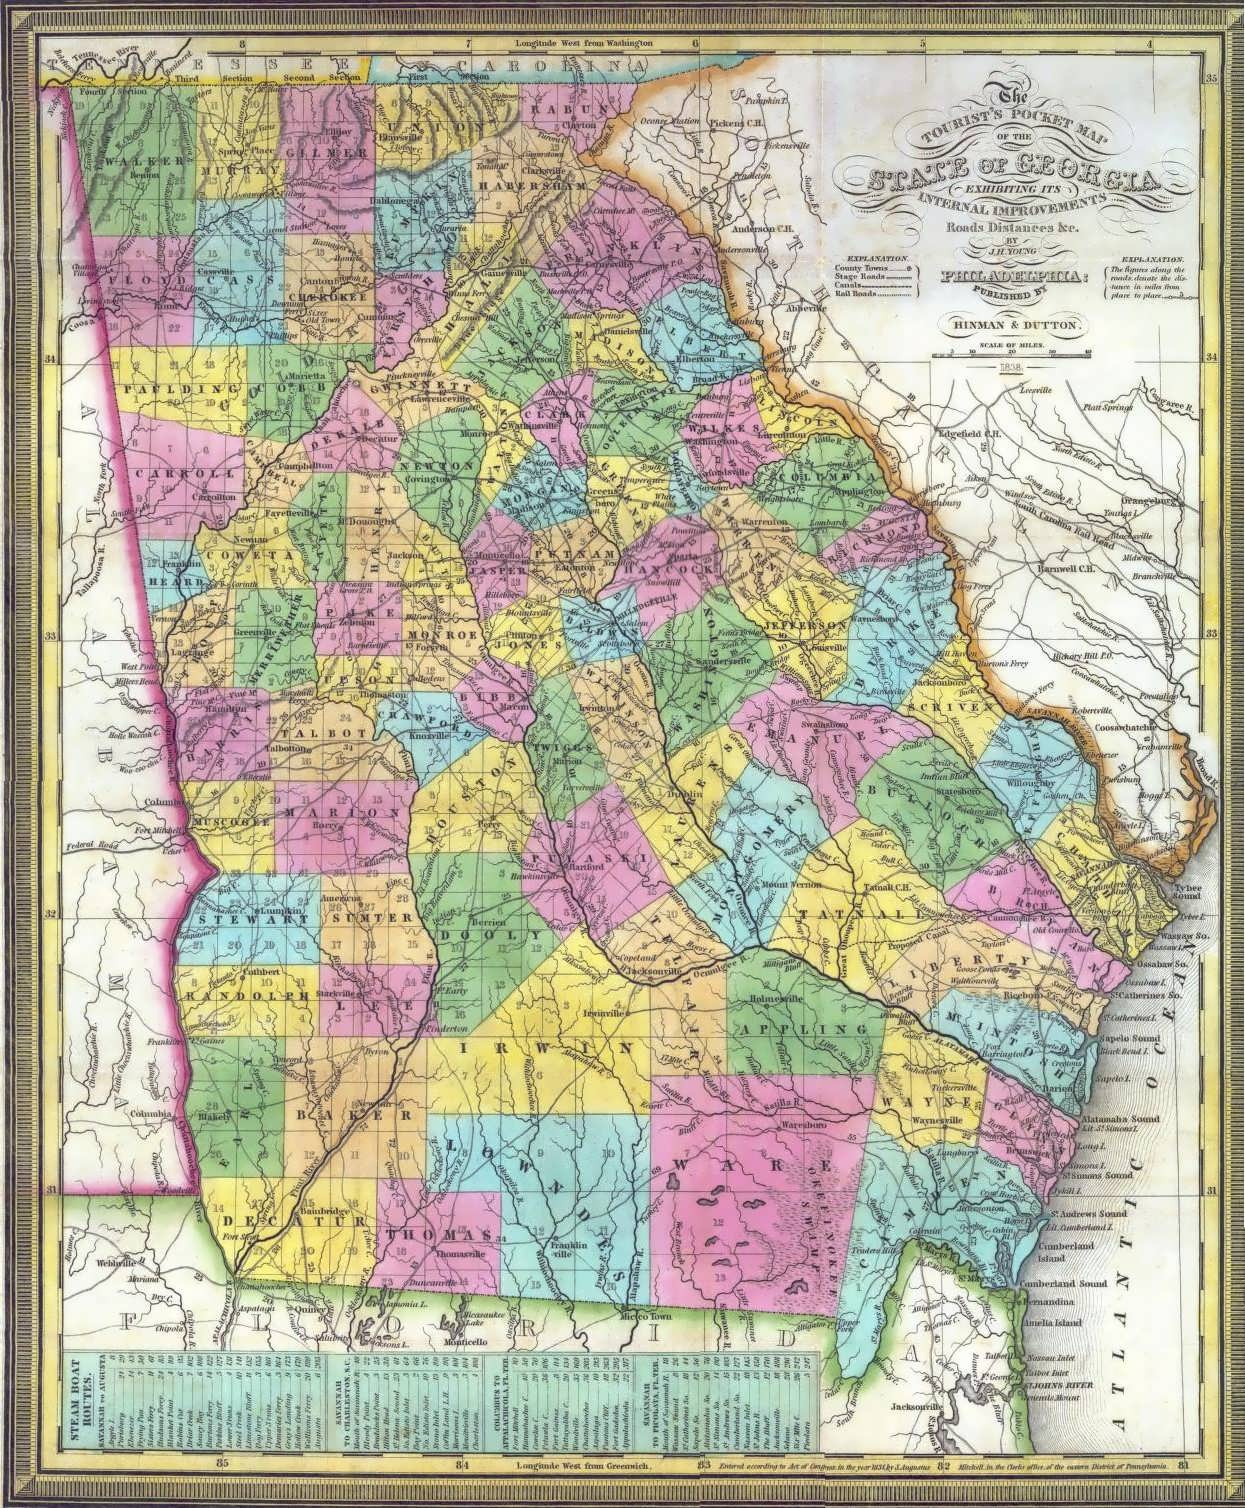 ga state map with Index on Bloomington also S Frame together with Cli sc climate also Georgias Business Plan For Savannah Port Could Make Louisiana Purchase Blush also Mapa.